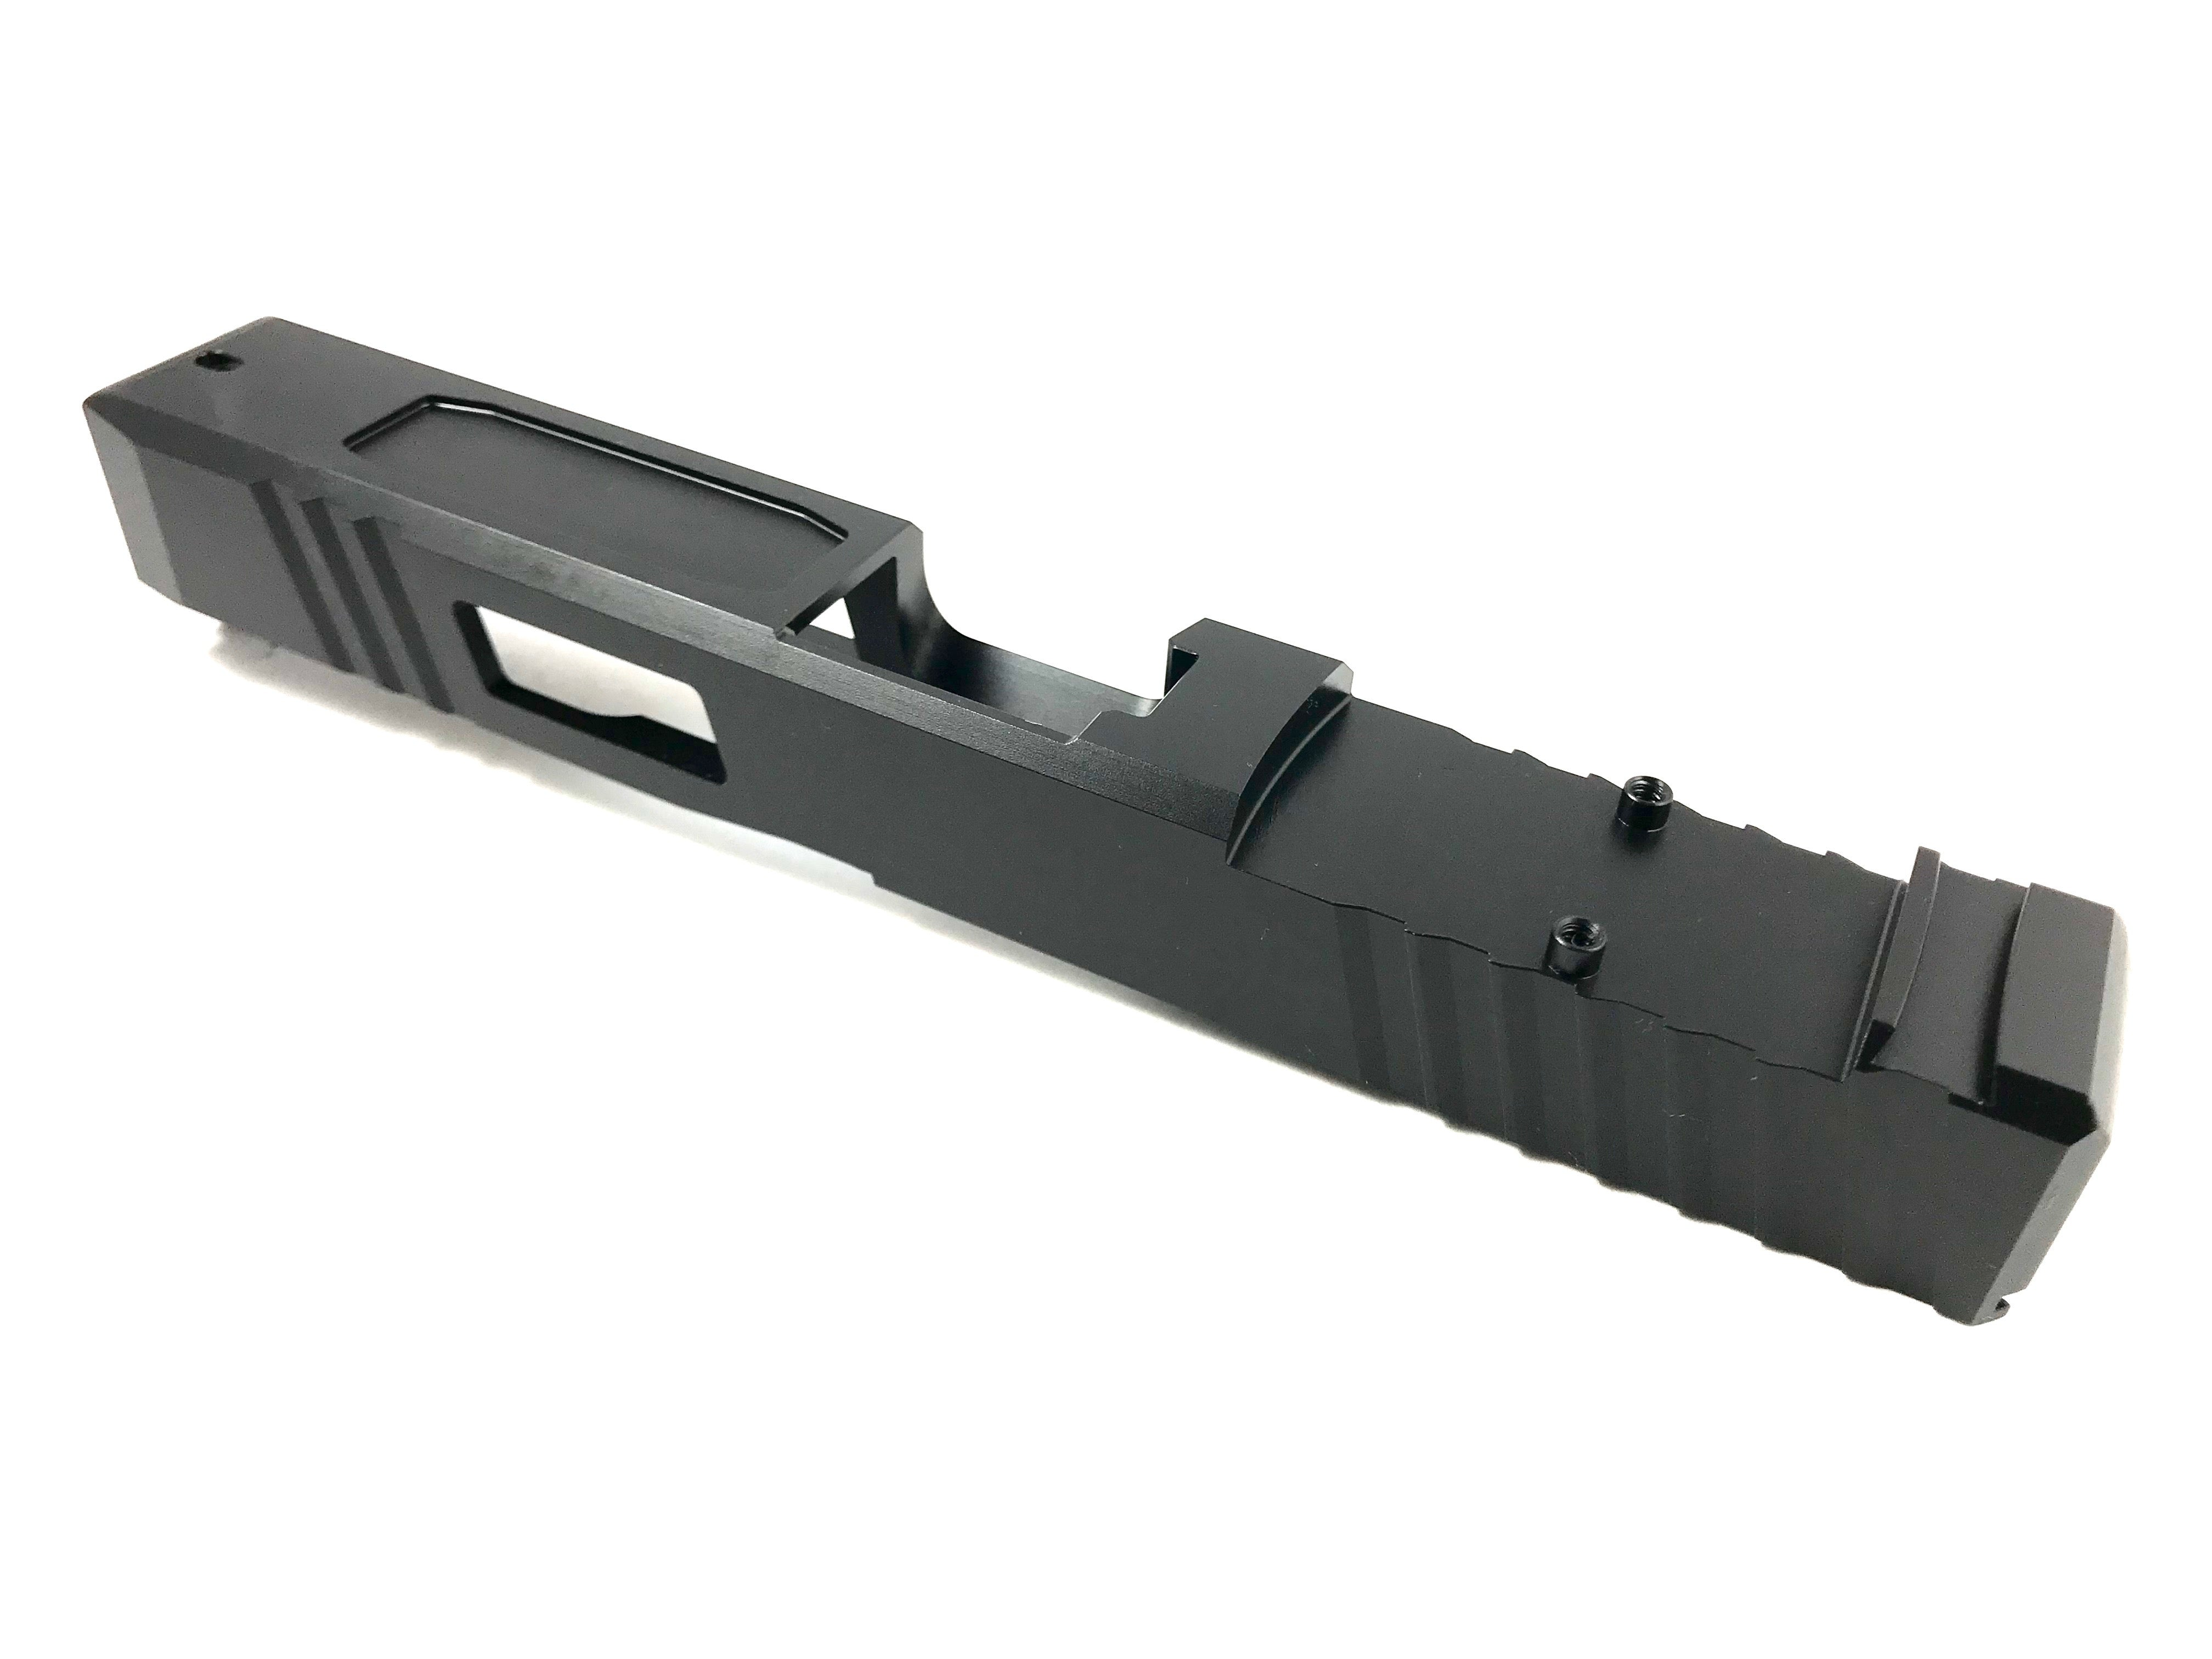 RMR Cut Slide with Window Cutout and Pocket Cuts, Fits Gen3 G17. Custom upgrade your Glock or complete your Polymer 80.